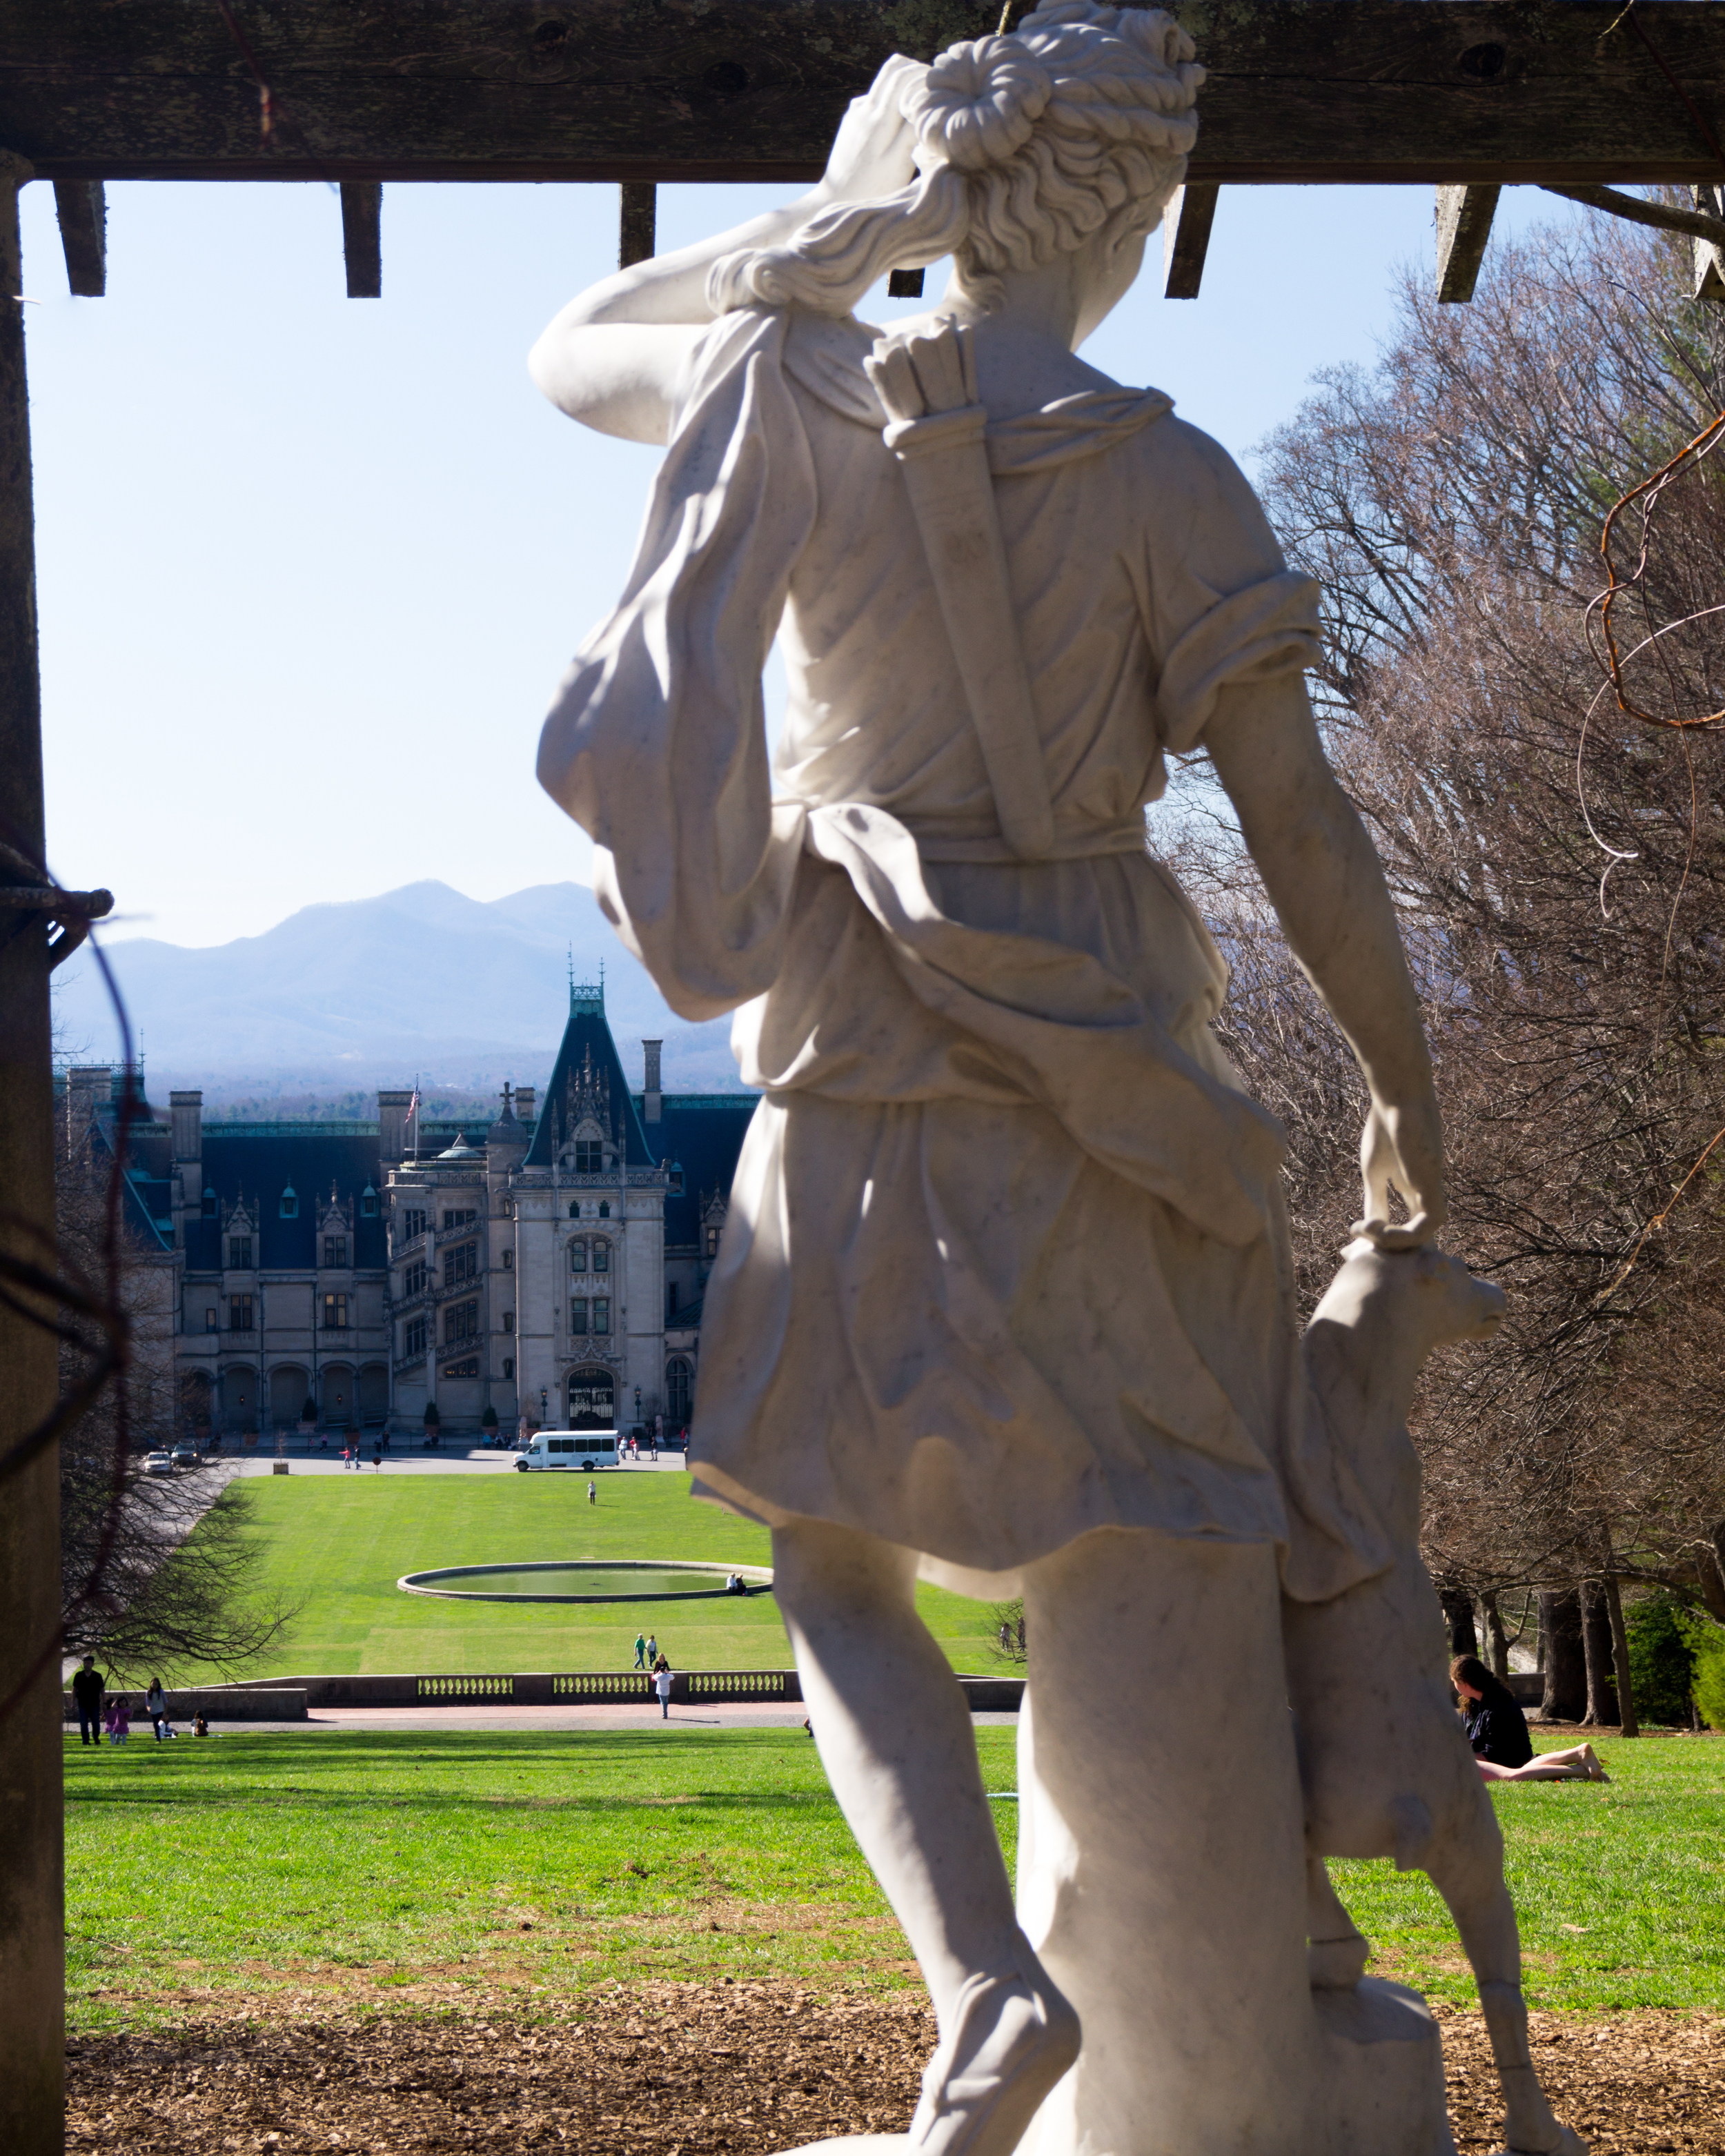 There is a large stretch of grass leading from the mansion up a hill to this statue.